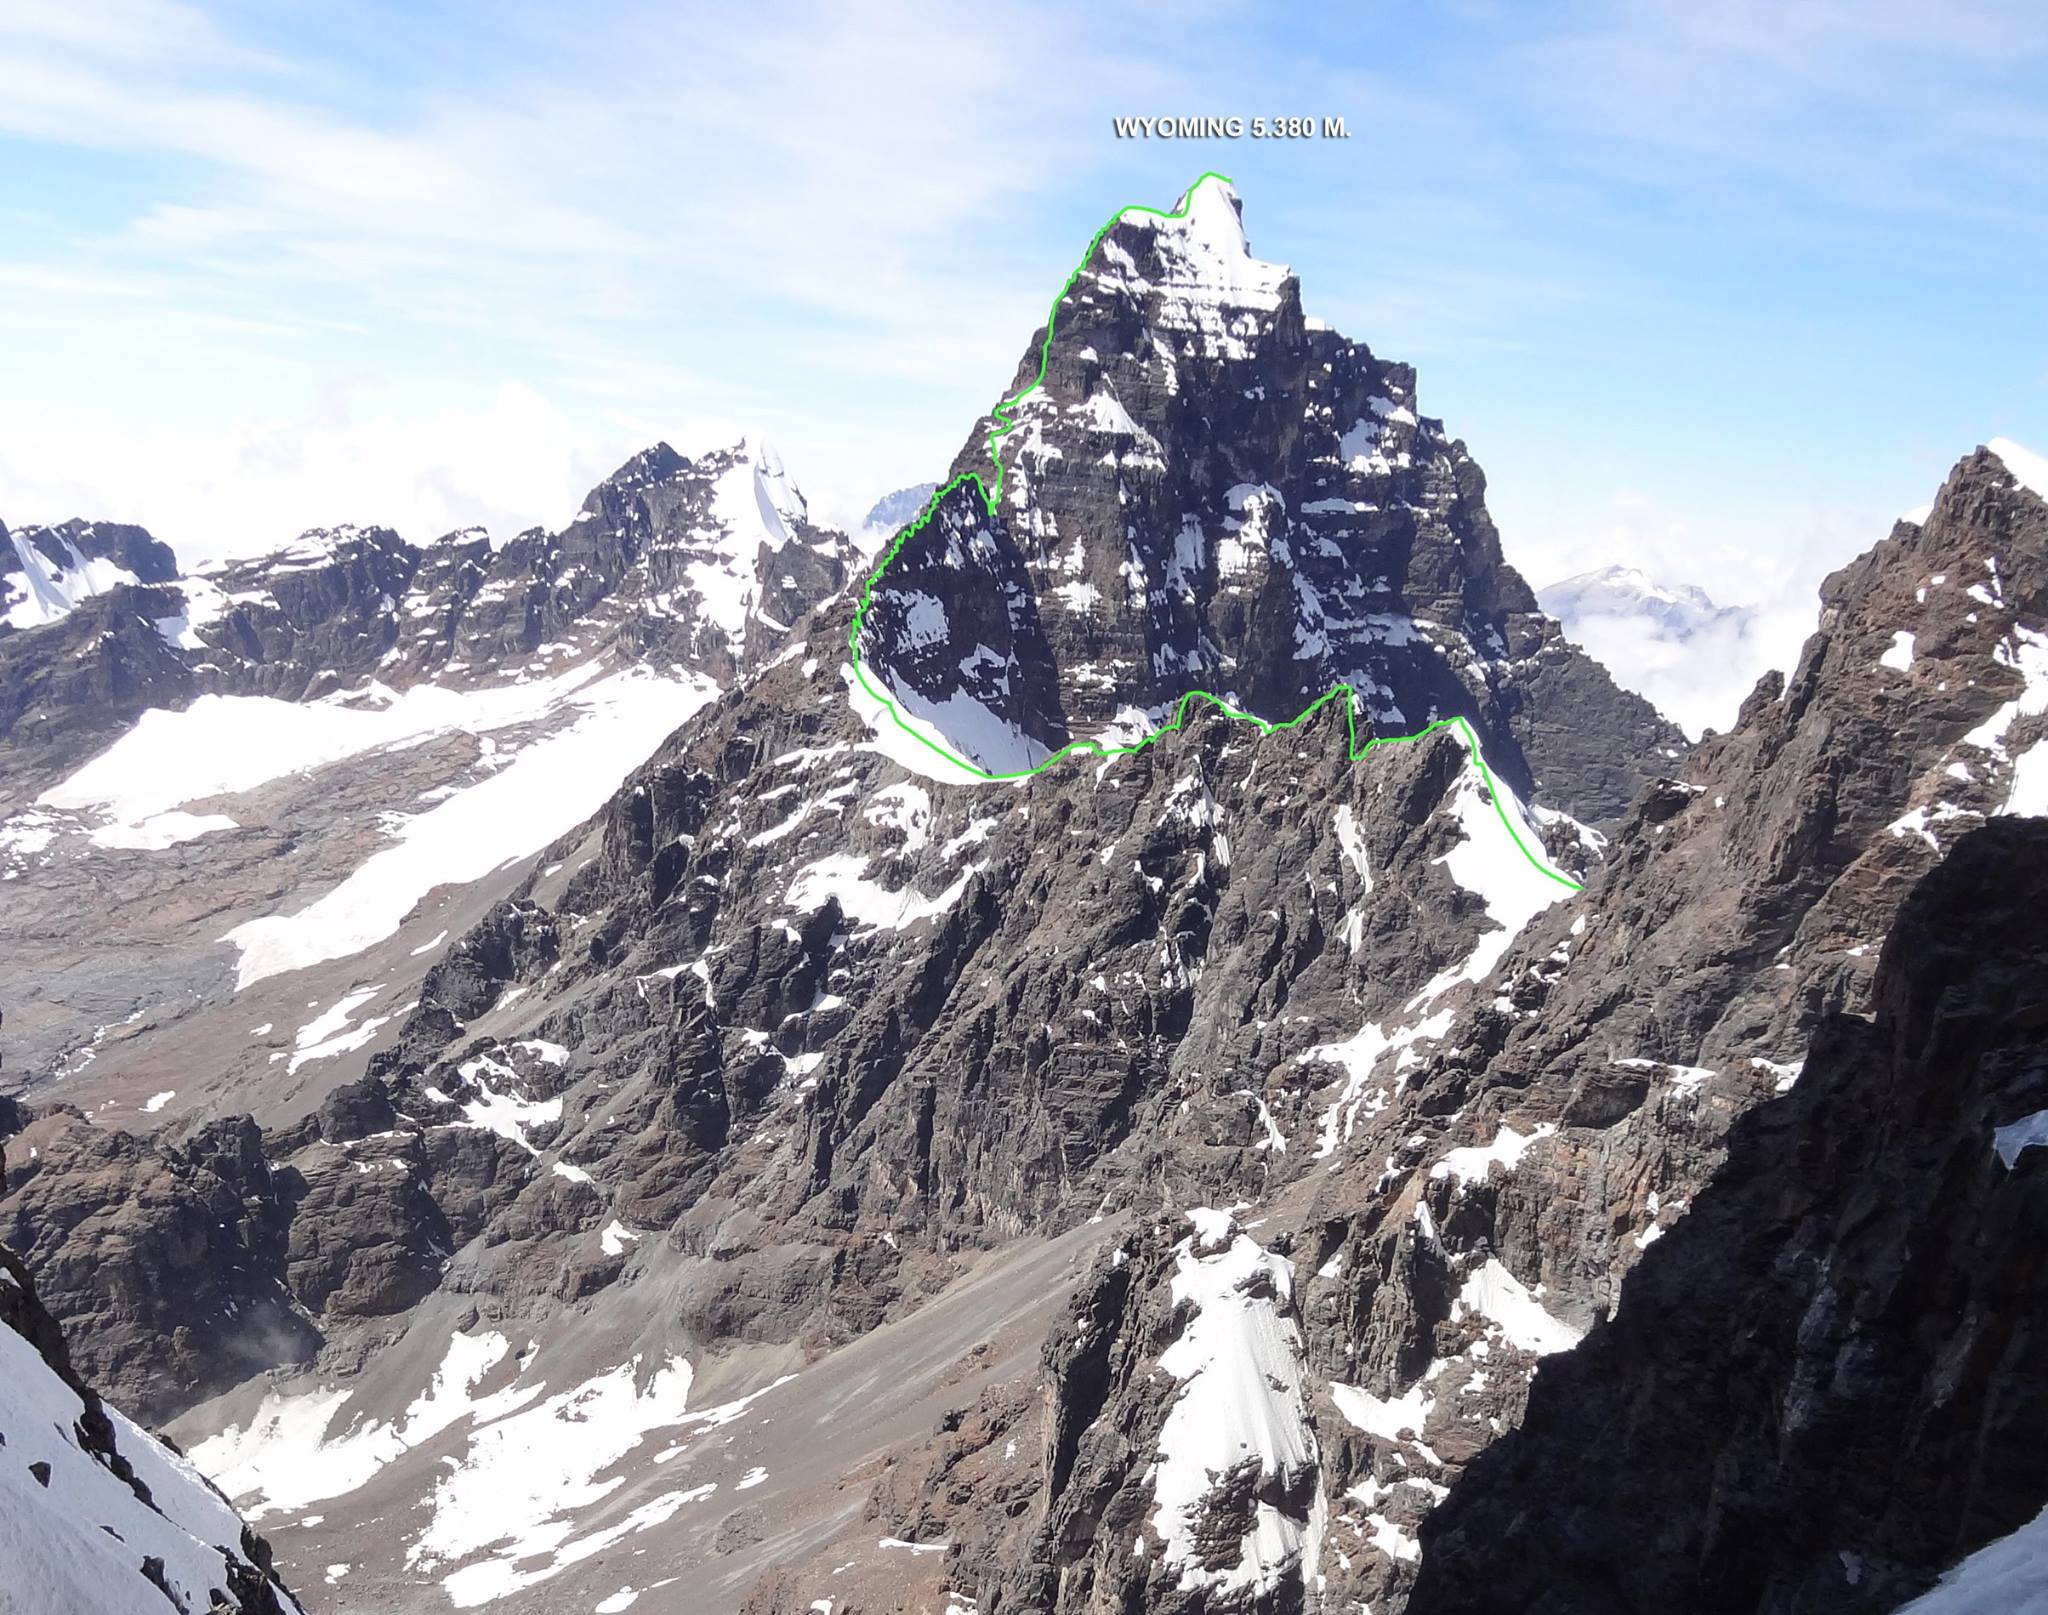 Detail of the route up Wyoming (a.k.a. Huallomen, 5,380m).